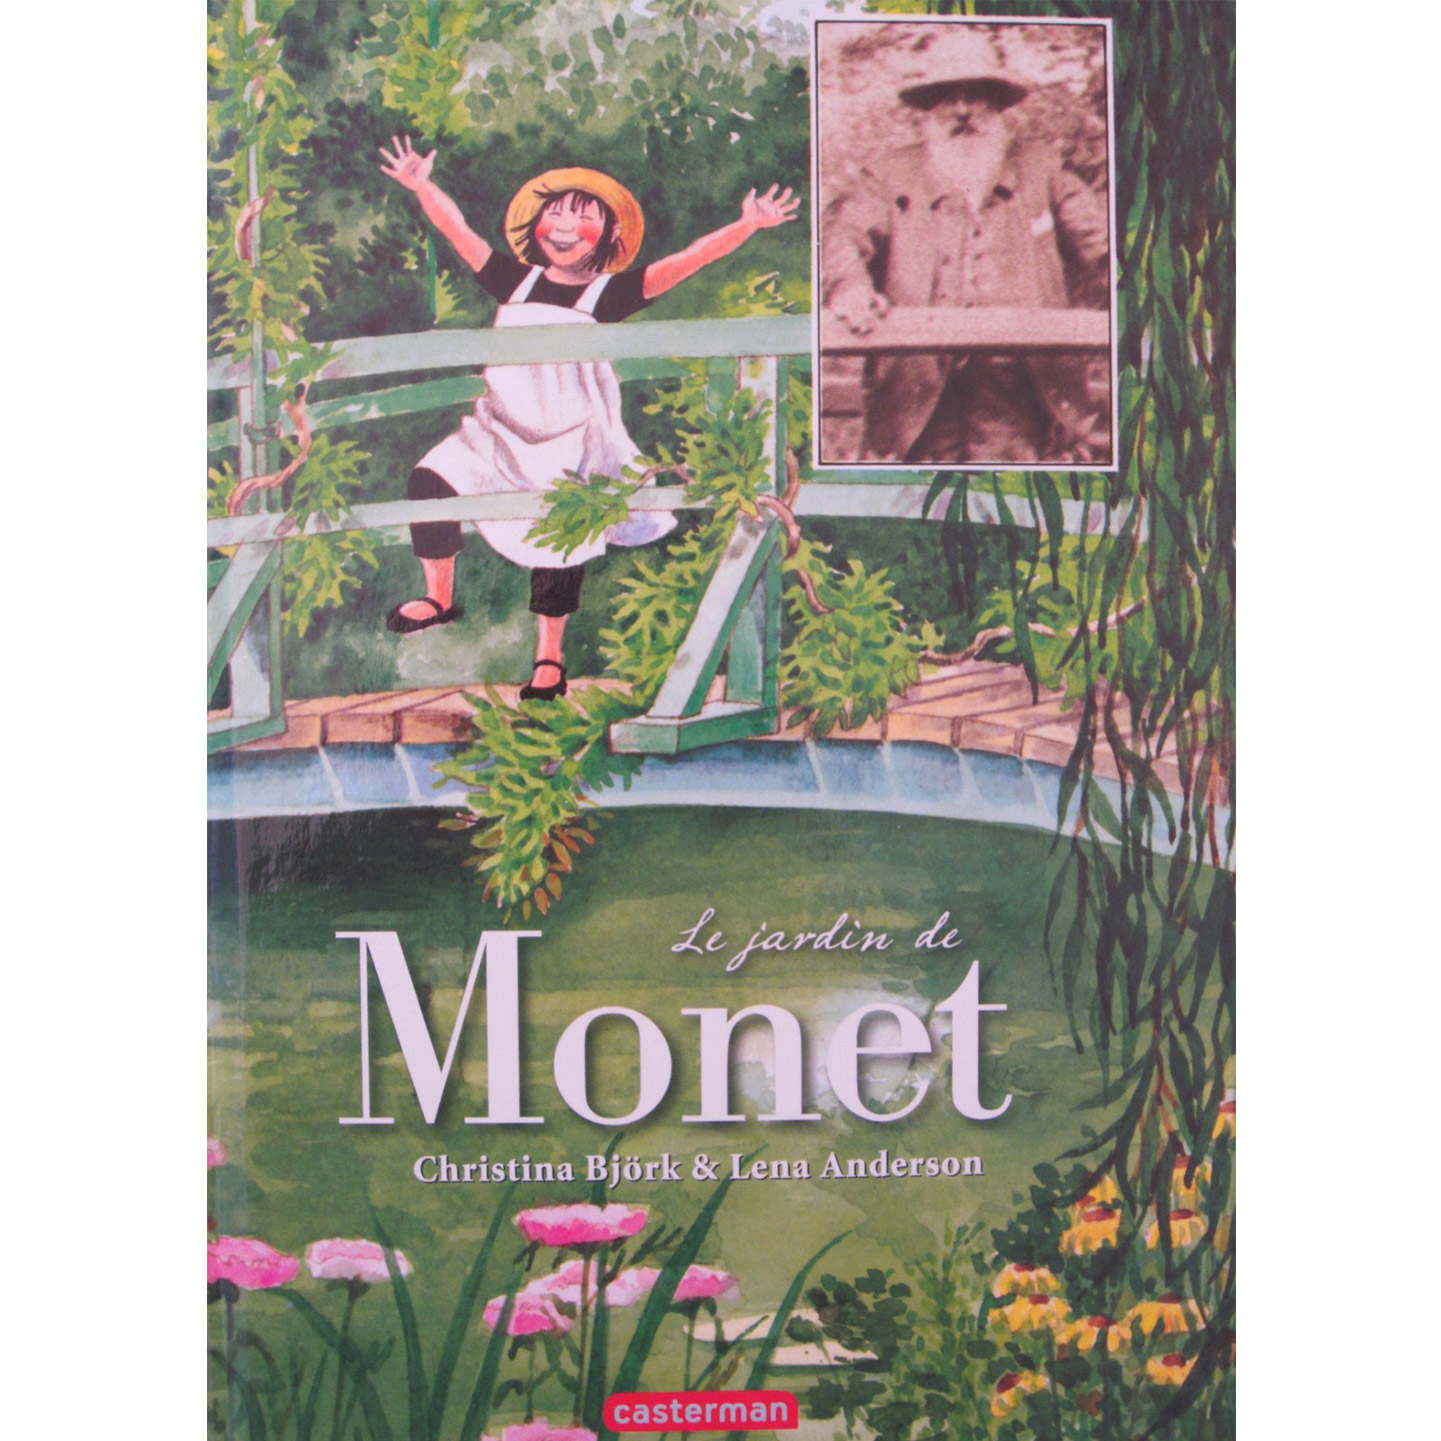 Fondation claude monet le jardin de monet fondation for Le jardin